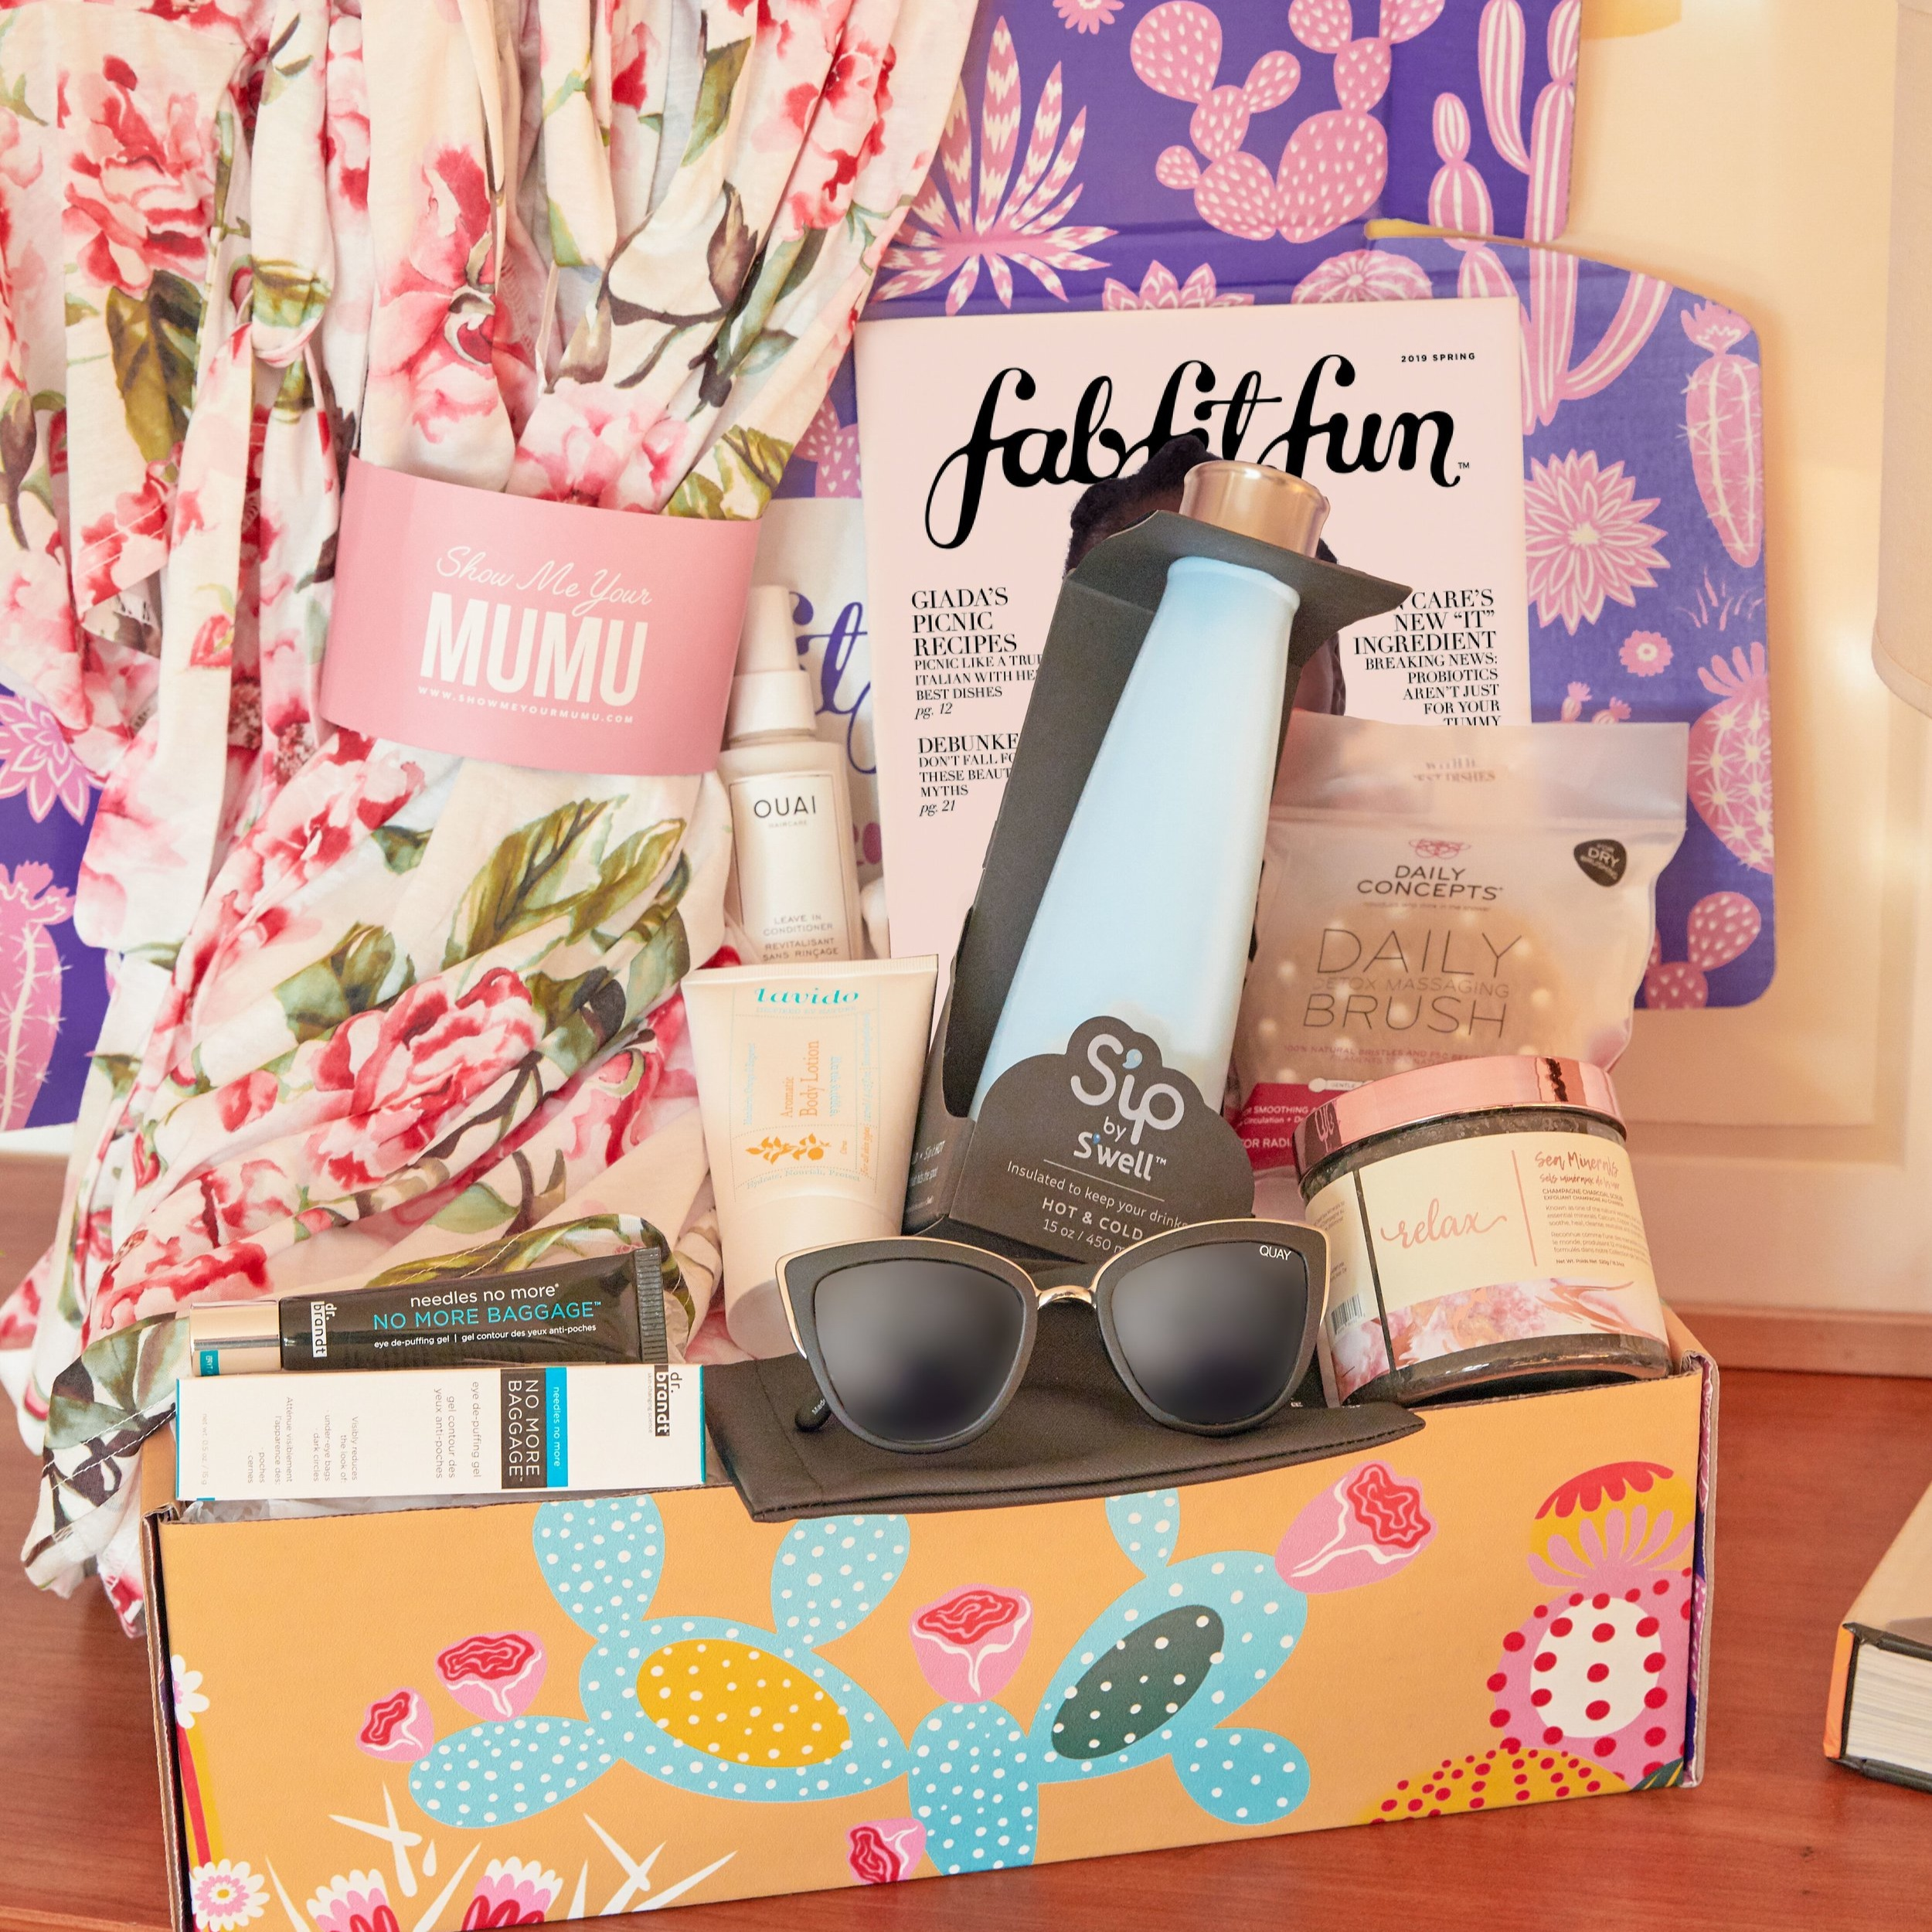 Fab Fit Fun Box - There's something nice about having all the season's essentials in beauty, healthy, and wellness delivered to your door without having to lift a finger!Get $10 off your box today with code WELCOME10